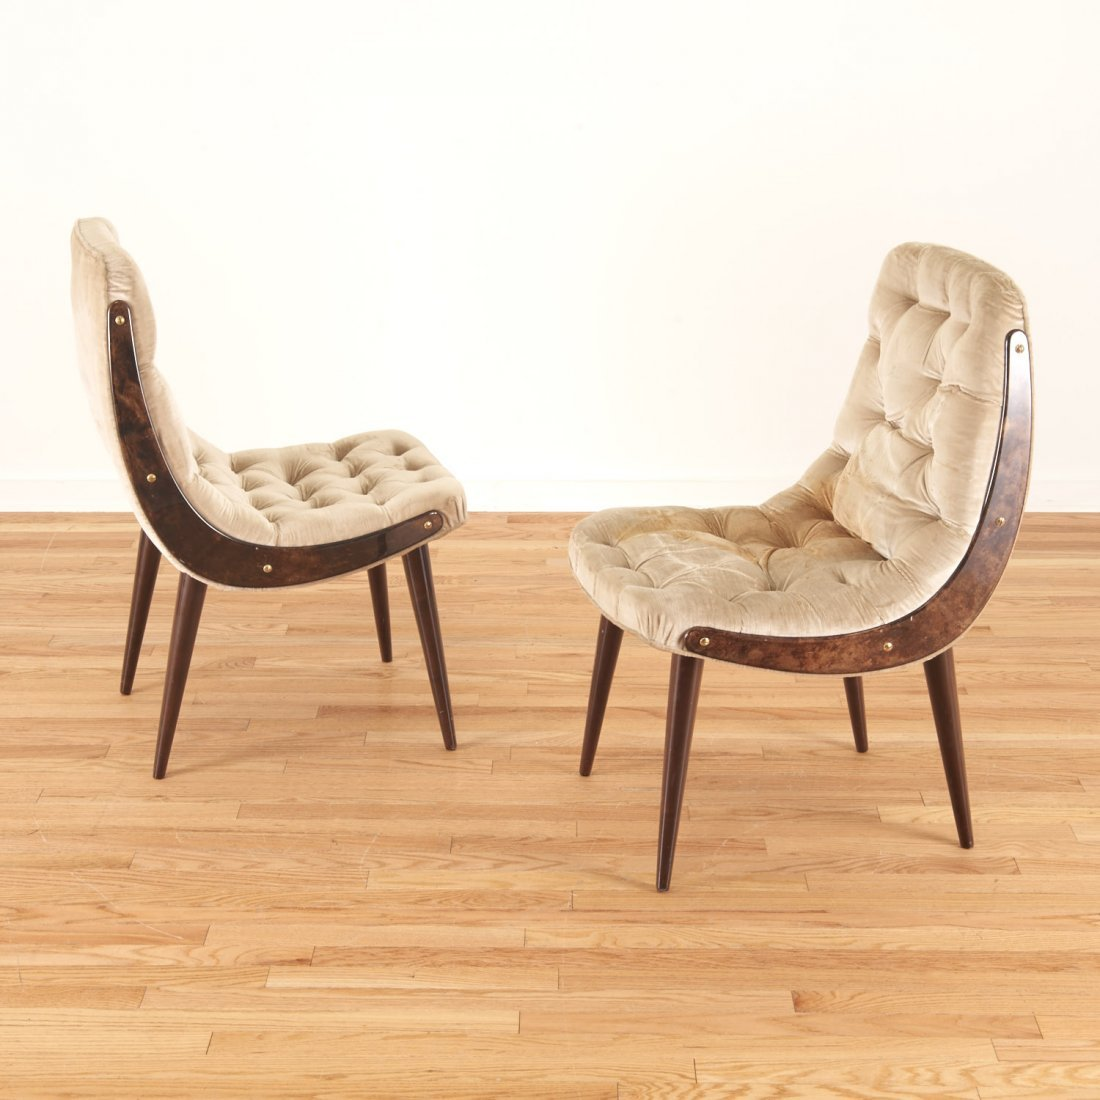 Pair Aldo Tura button tufted velvet dining chairs - 3